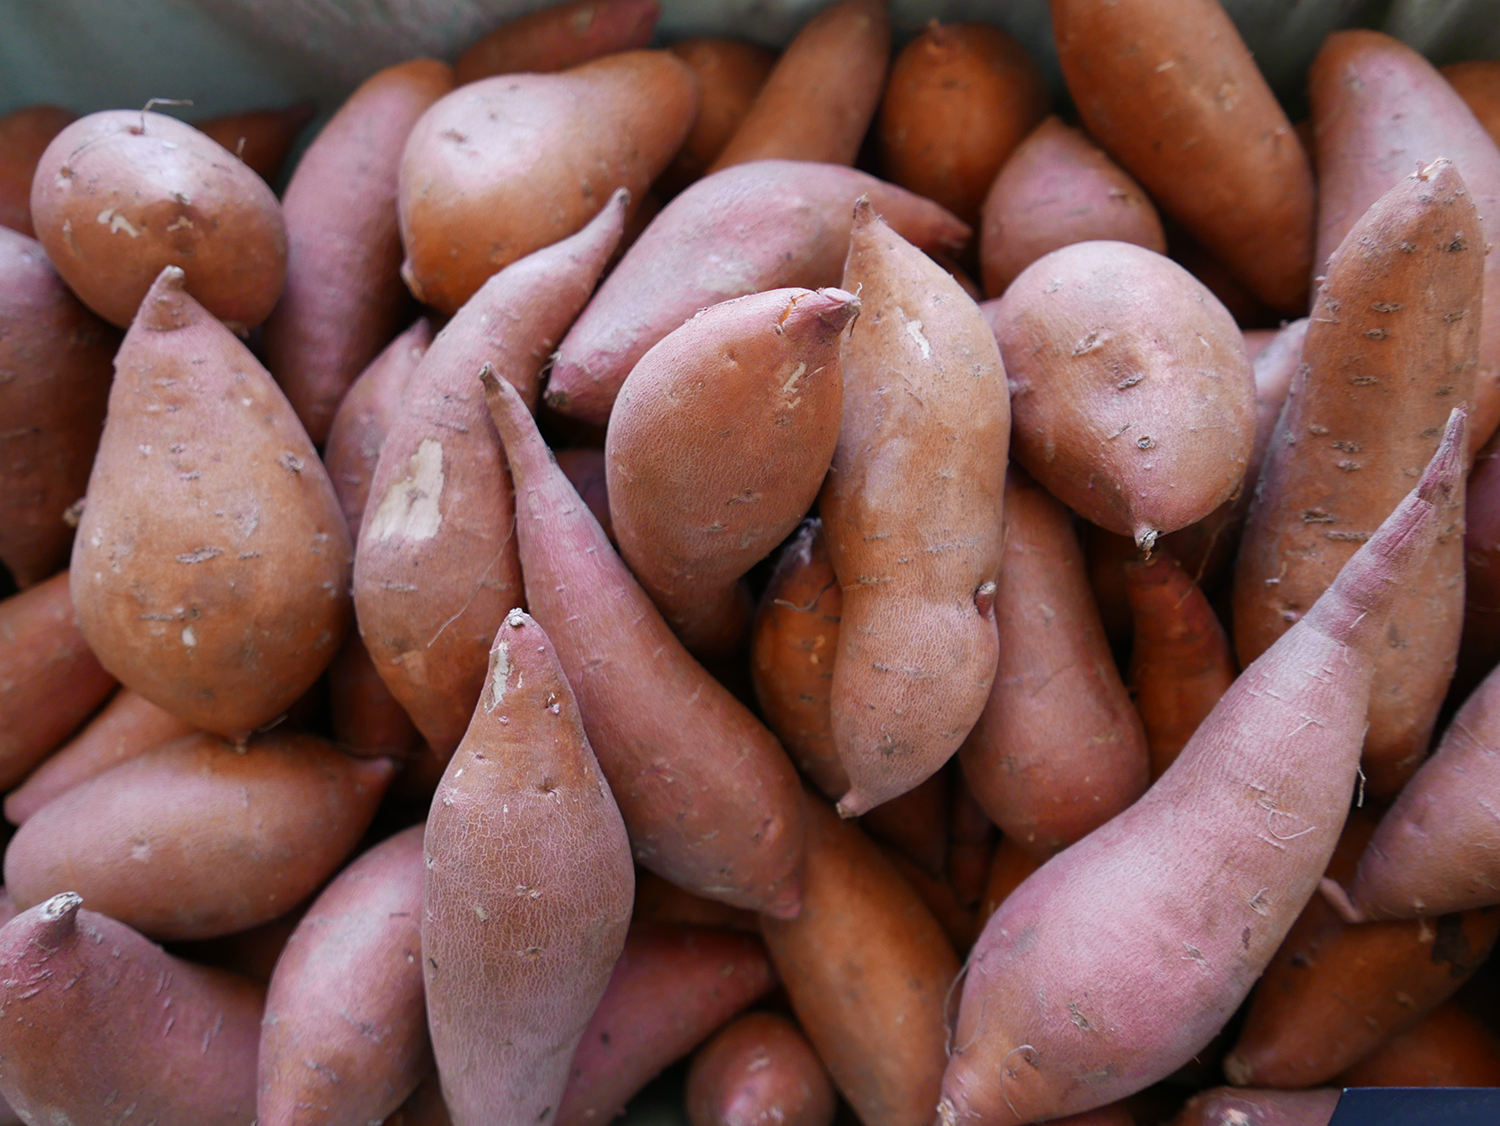 Roasted Sweet Potatoes: How to Bake Sweet Potatoes in the Oven